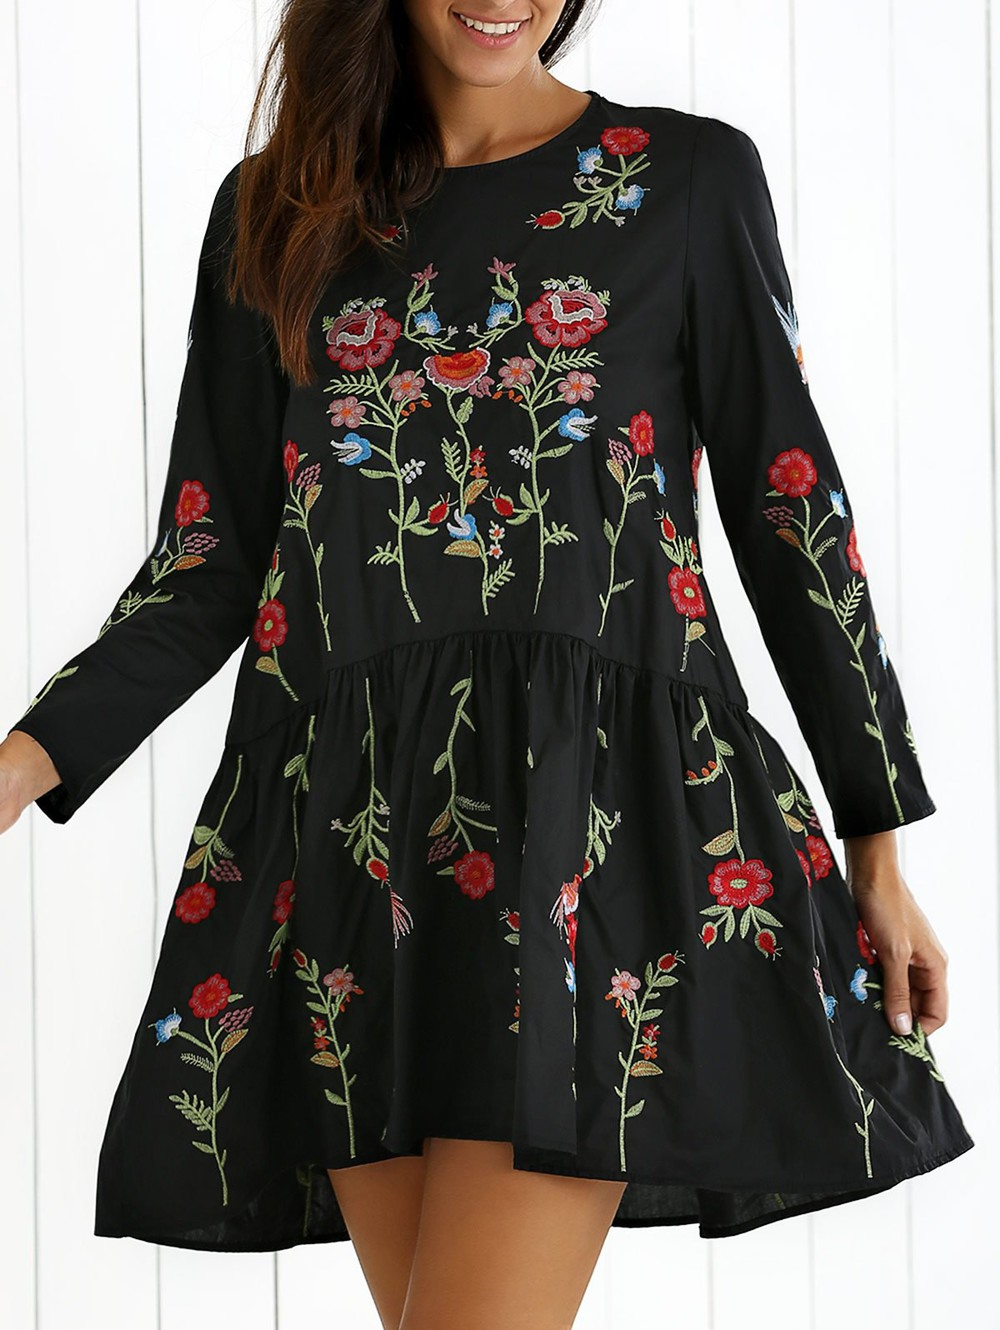 Zaful Floral Embroidered Drop Waist Dress in black